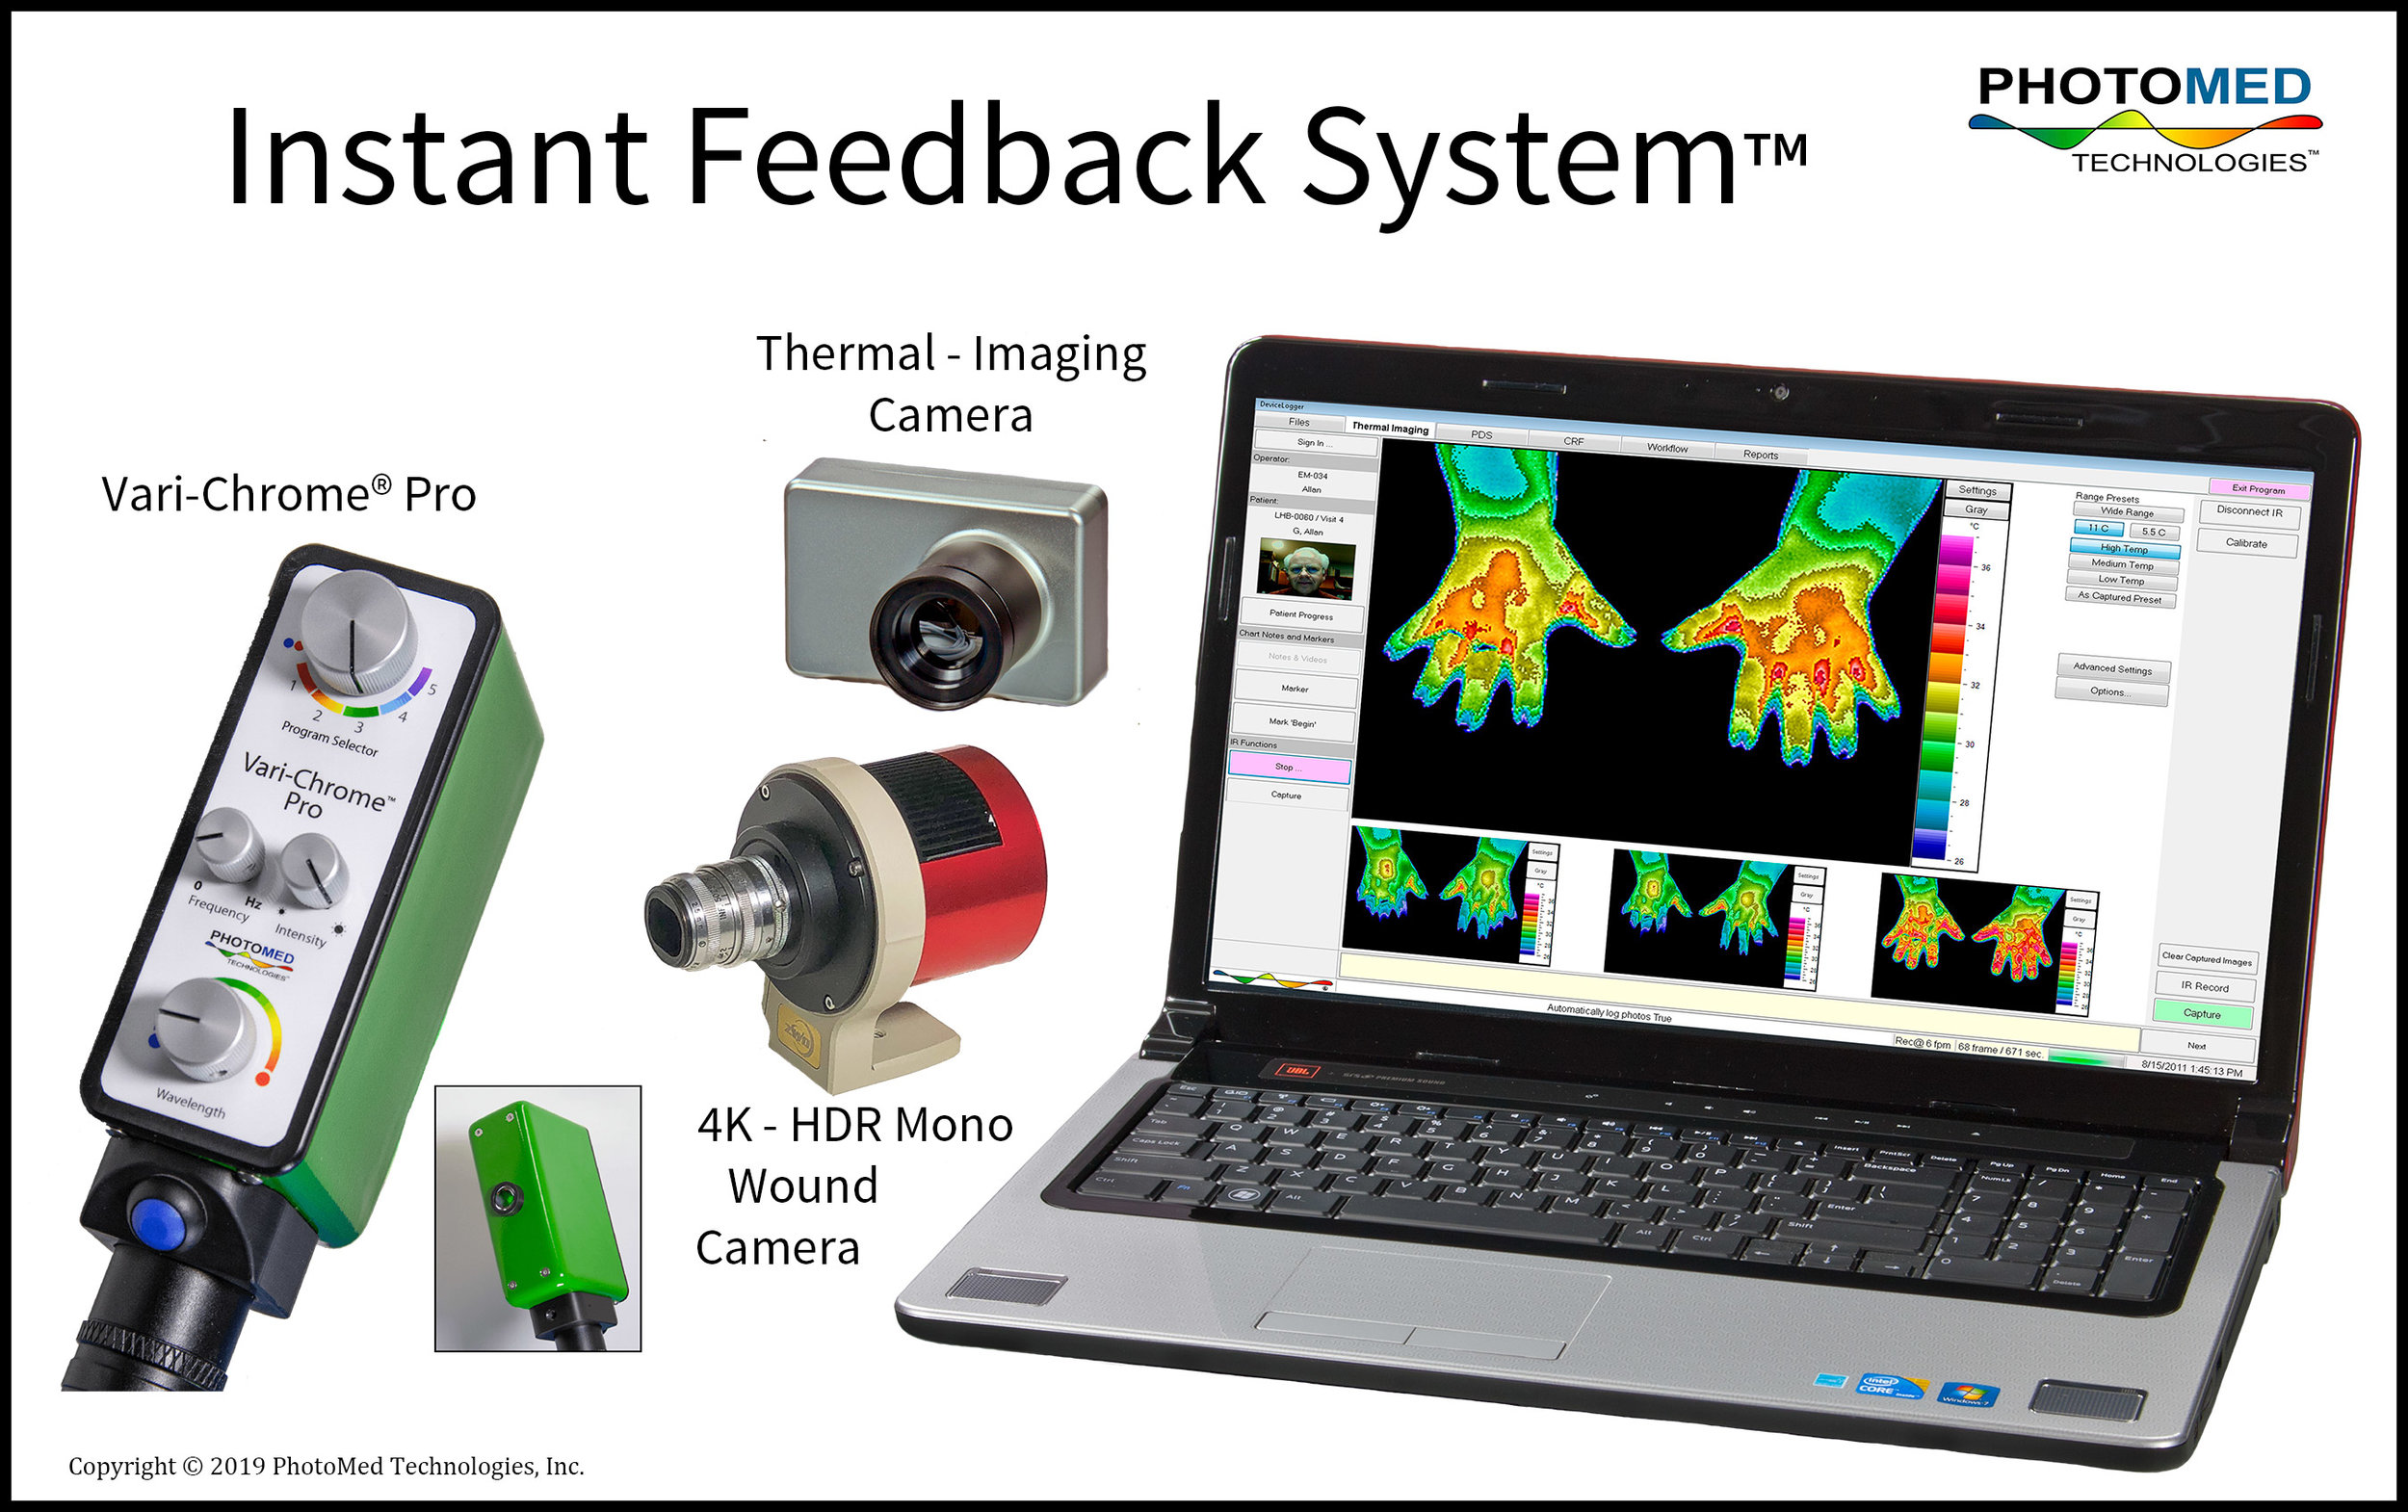 The I nstant Feedback System ™ records the steps taken to prompt the return toward normal functions. The Platform collects data in real-time for research or for sharing with patients. Patients report the importance of the recordings to them when the try to explain how they improved so quickly. PhotoMed's team used research data from real-world people to make the therapy more effective and efficient.